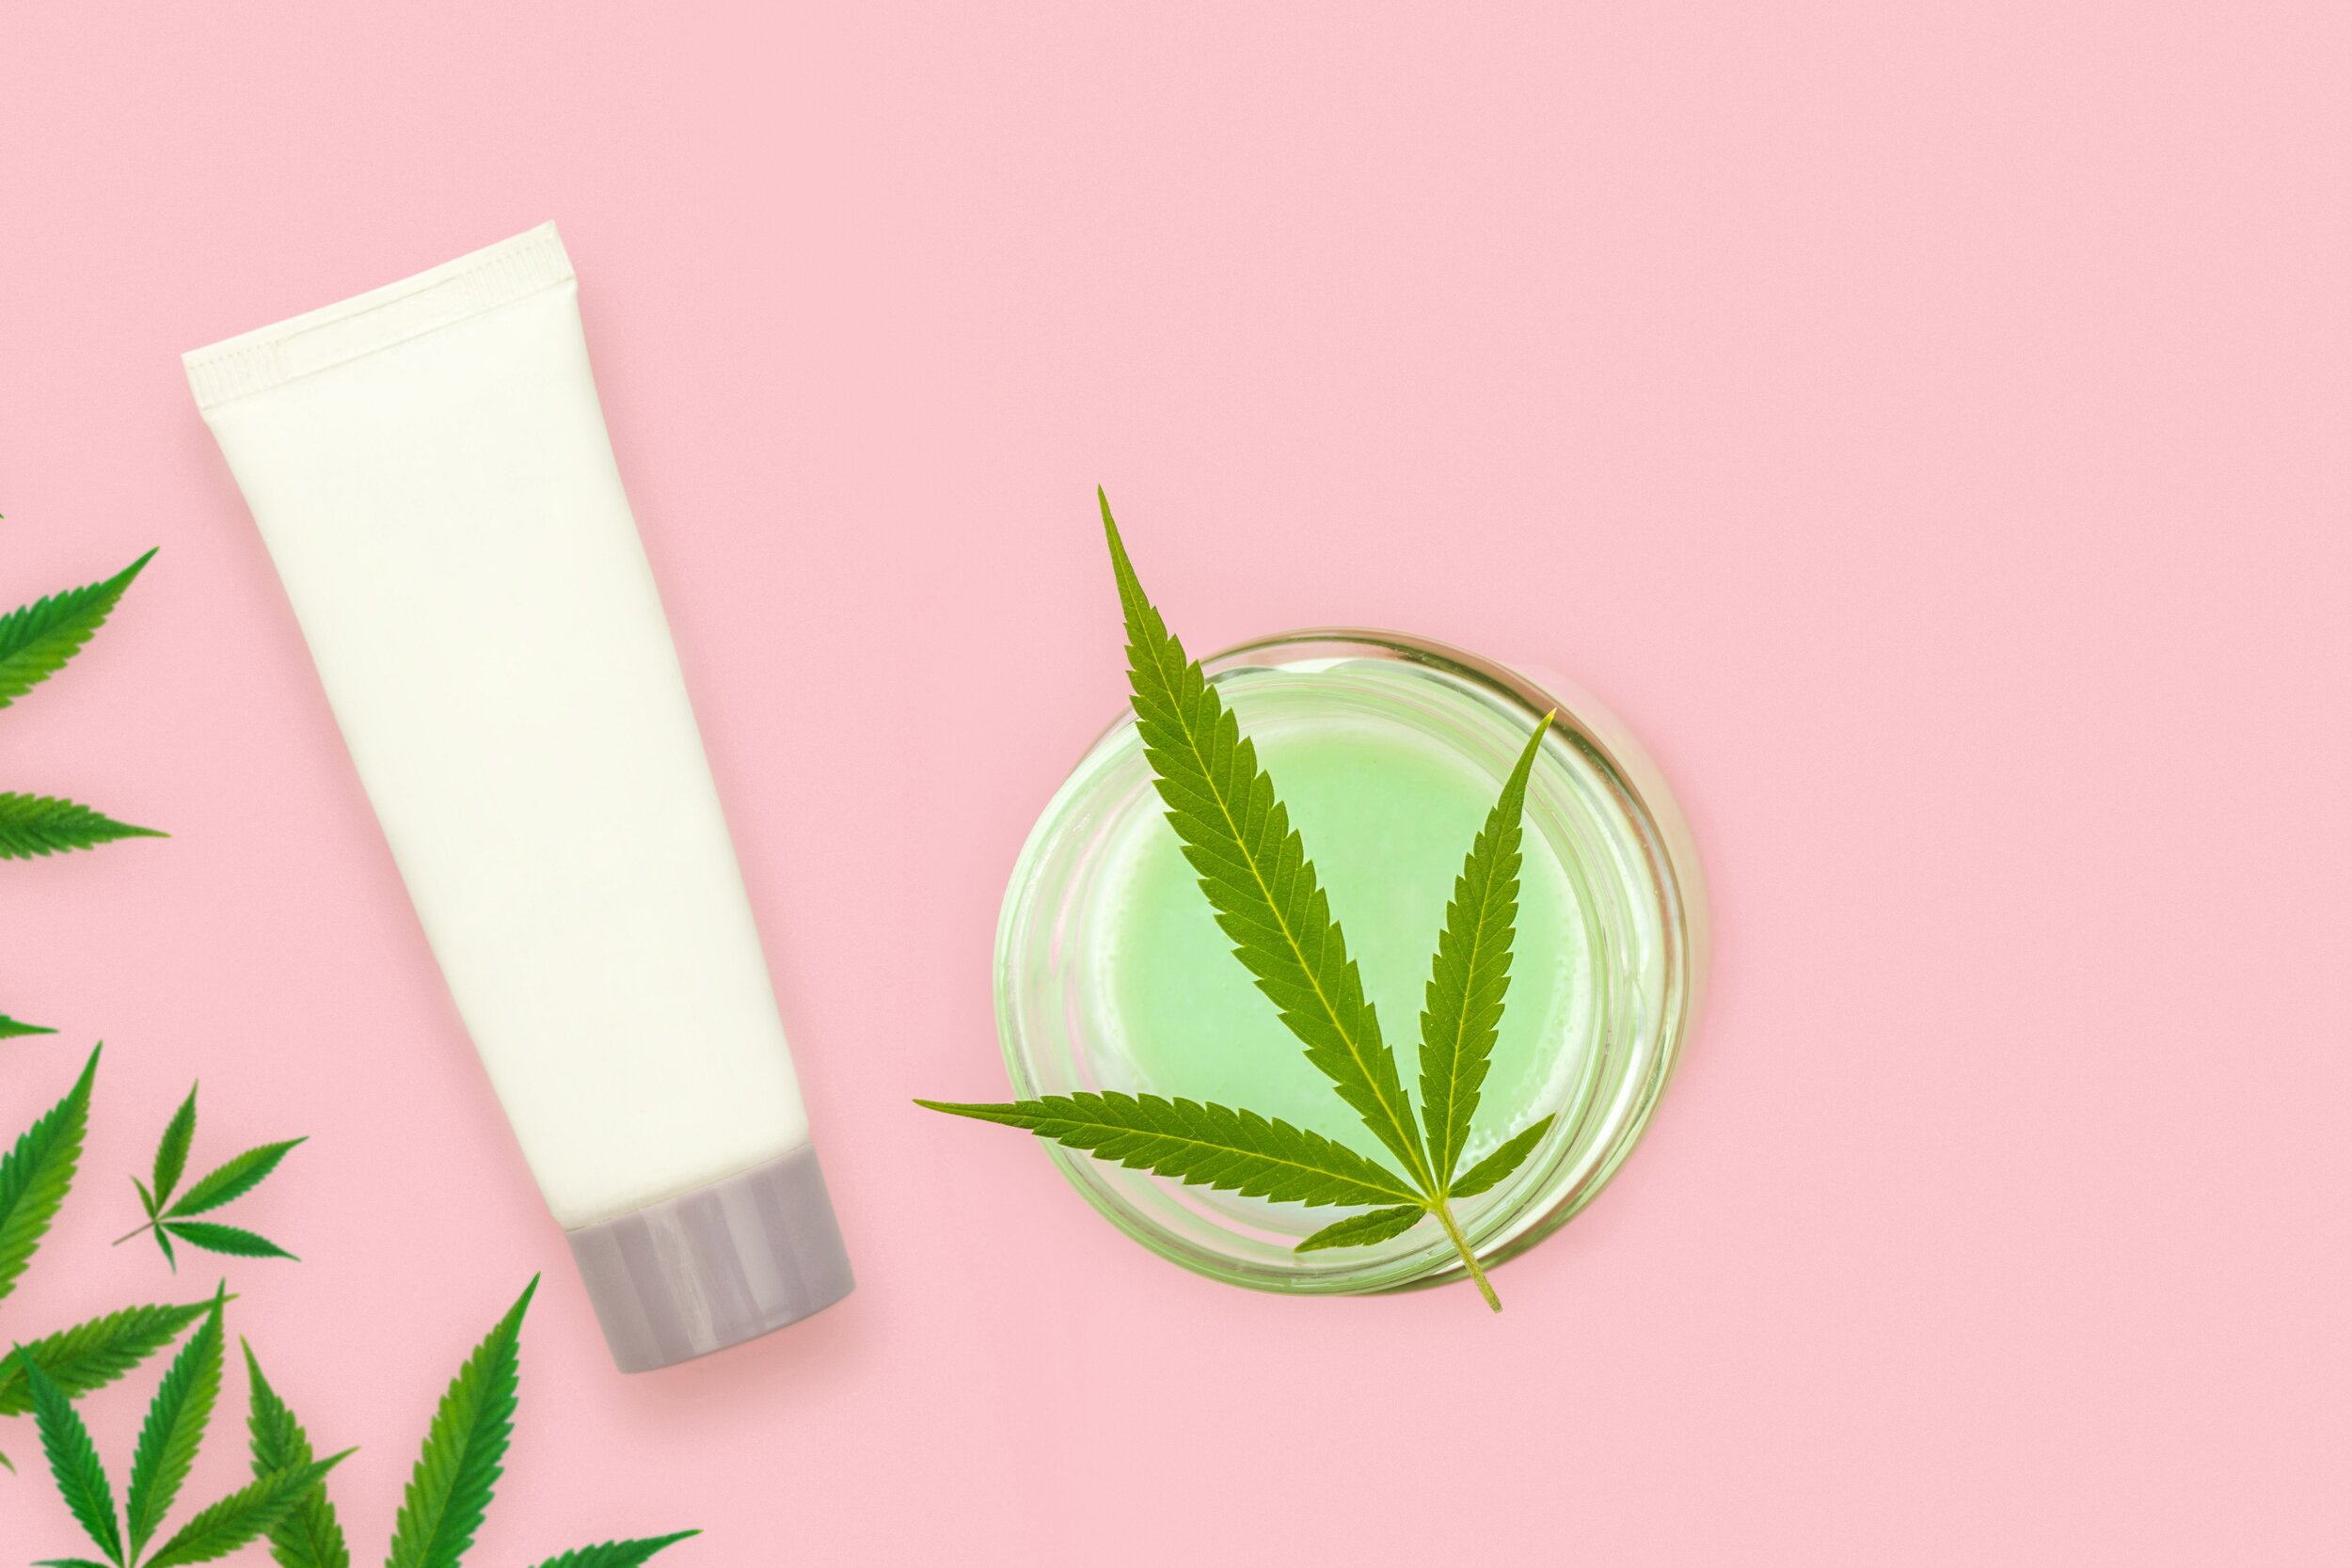 A topical is any type of cannabis product, including lotions, balms or creams that are applied to the outside of a user's body to help with medicinal issues like body pain, skin problems, etc. Although these lotions showcase specific cannabinoids extracts like THC, topicals won't actually get you high. The product is absorbed through the skin, so many users like the less aggressive approach to consuming marijuana.